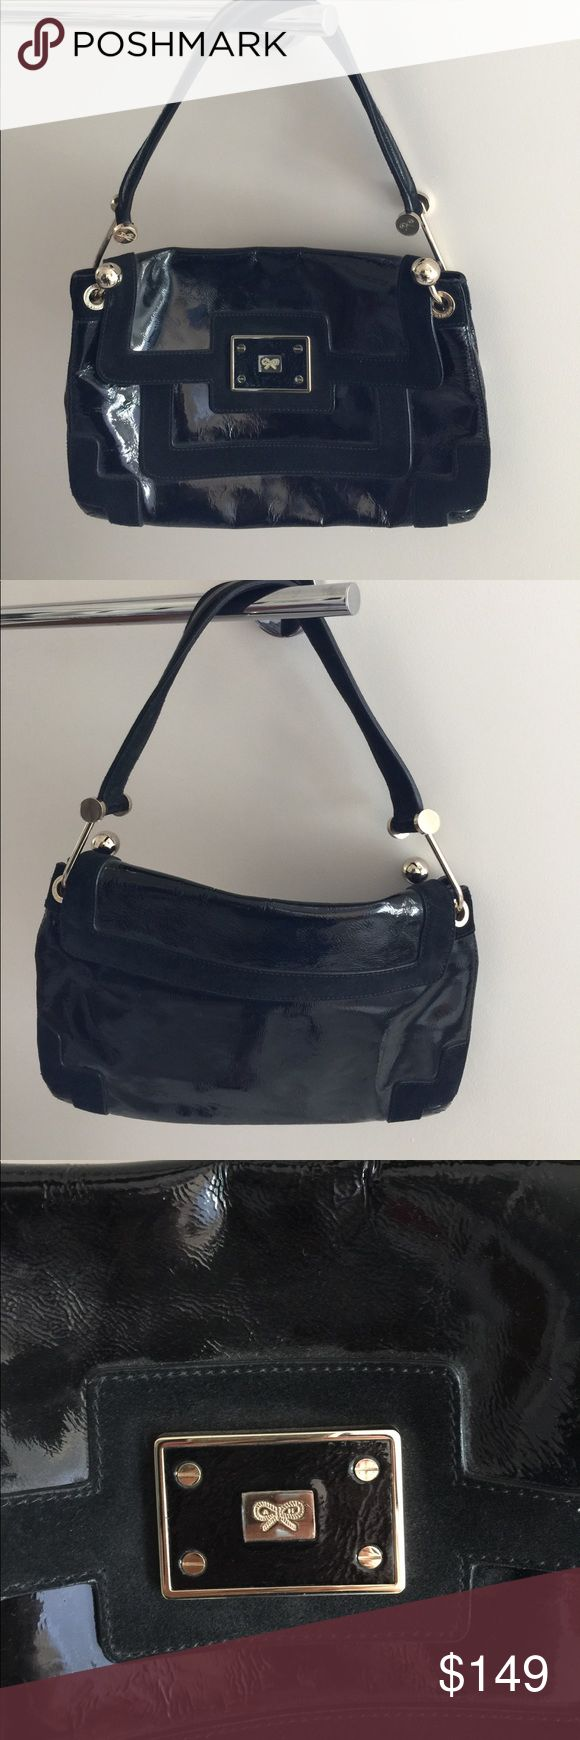 Genuine Anya Hindmarch purse Used 1x for a party. Excellent condition. Black patent leather and suede. Includes dust jacket. Anya Hindmarch Bags Shoulder Bags